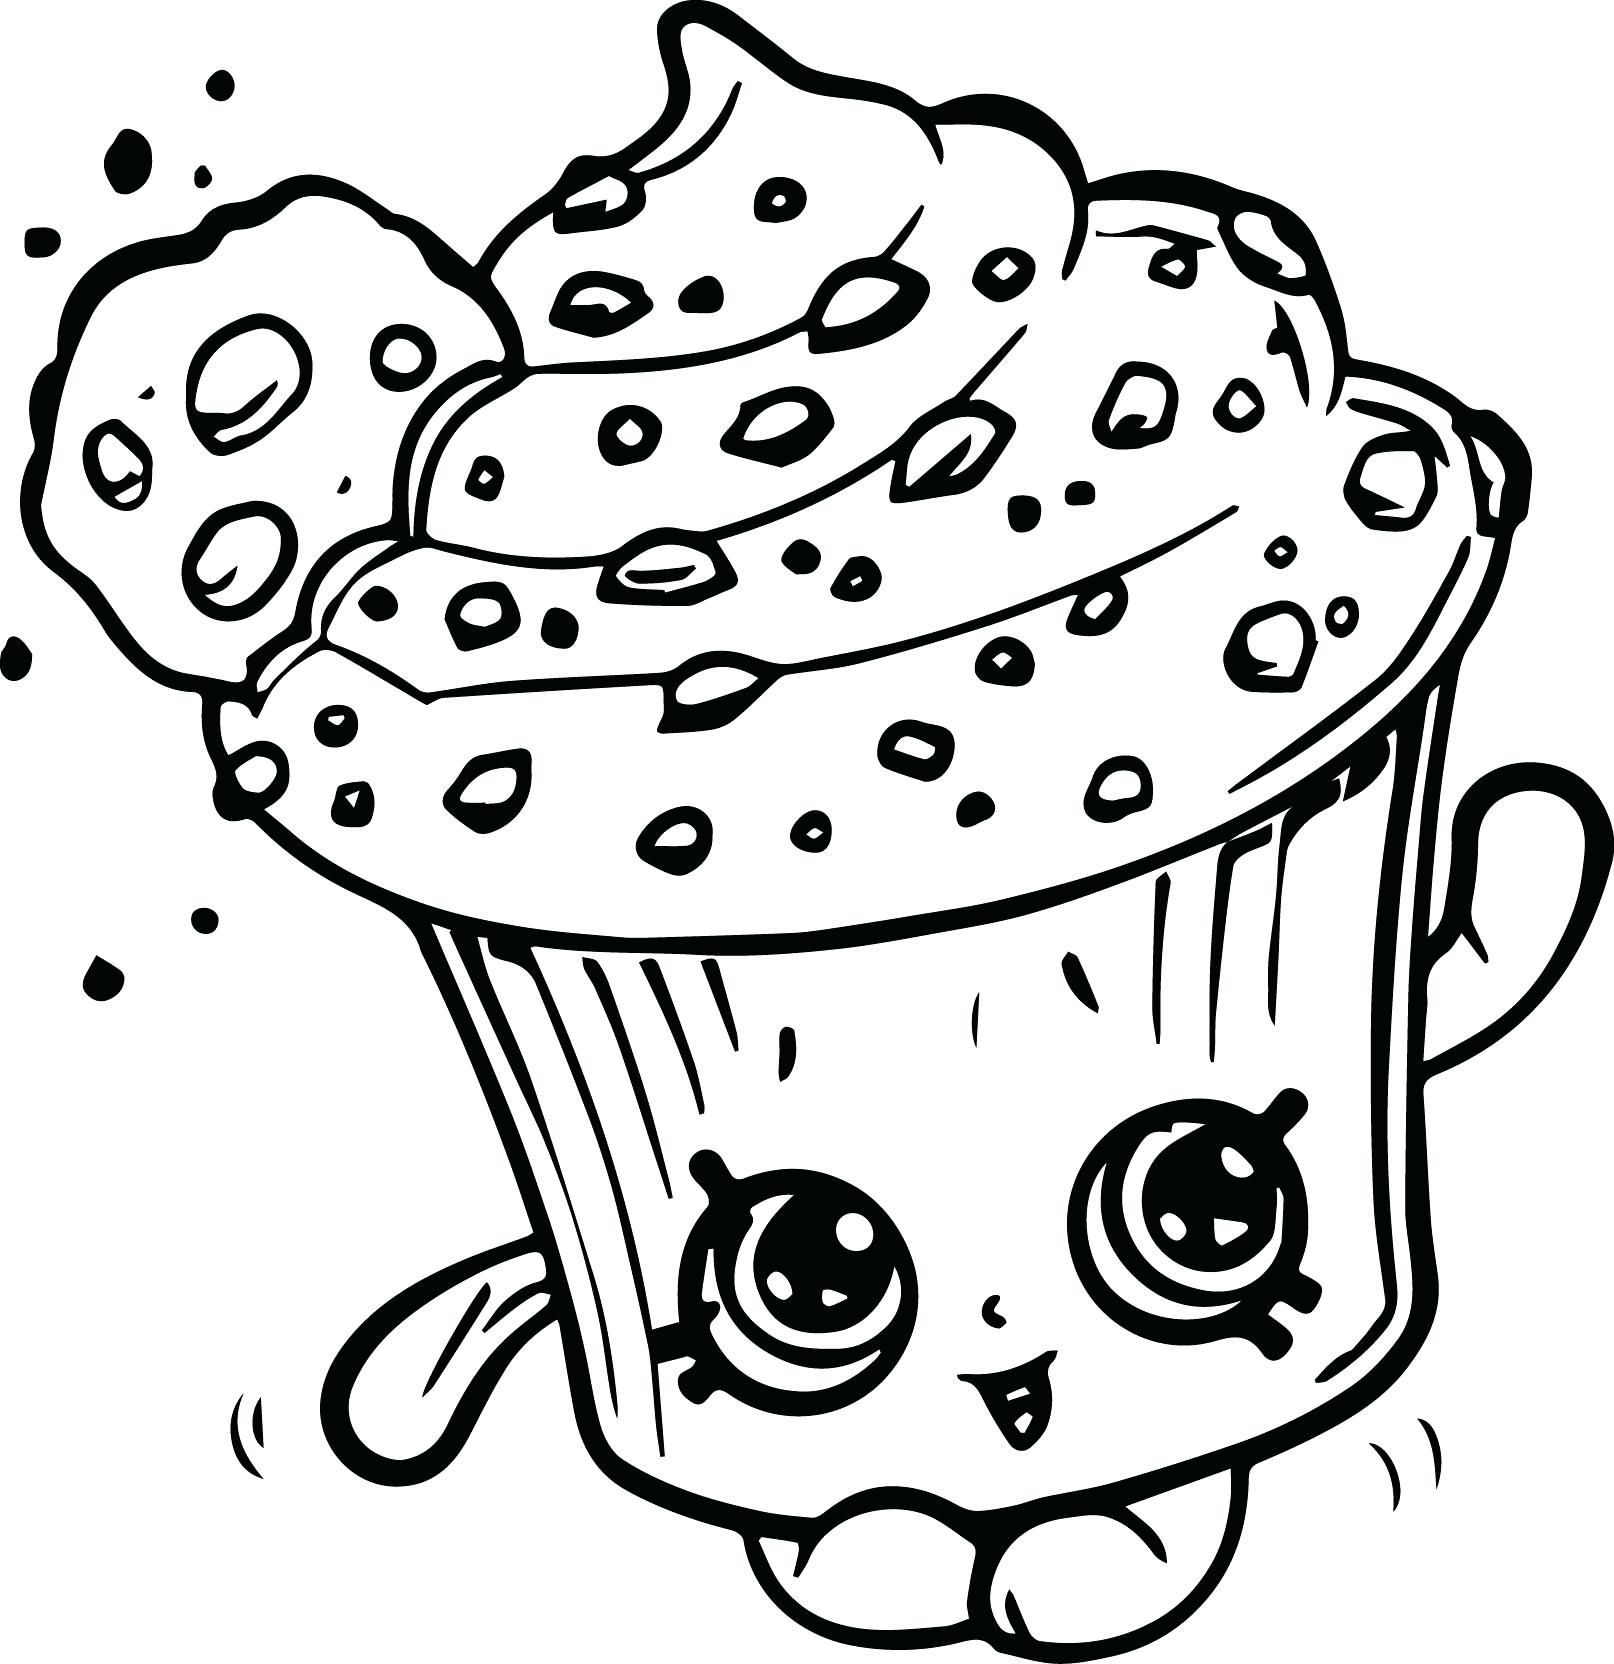 Shopkins Coloring Pages Cupcake Queen 5 Jpg 1614 1664 Shopkins Coloring Pages Free Printable Shopkin Coloring Pages Cupcake Coloring Pages